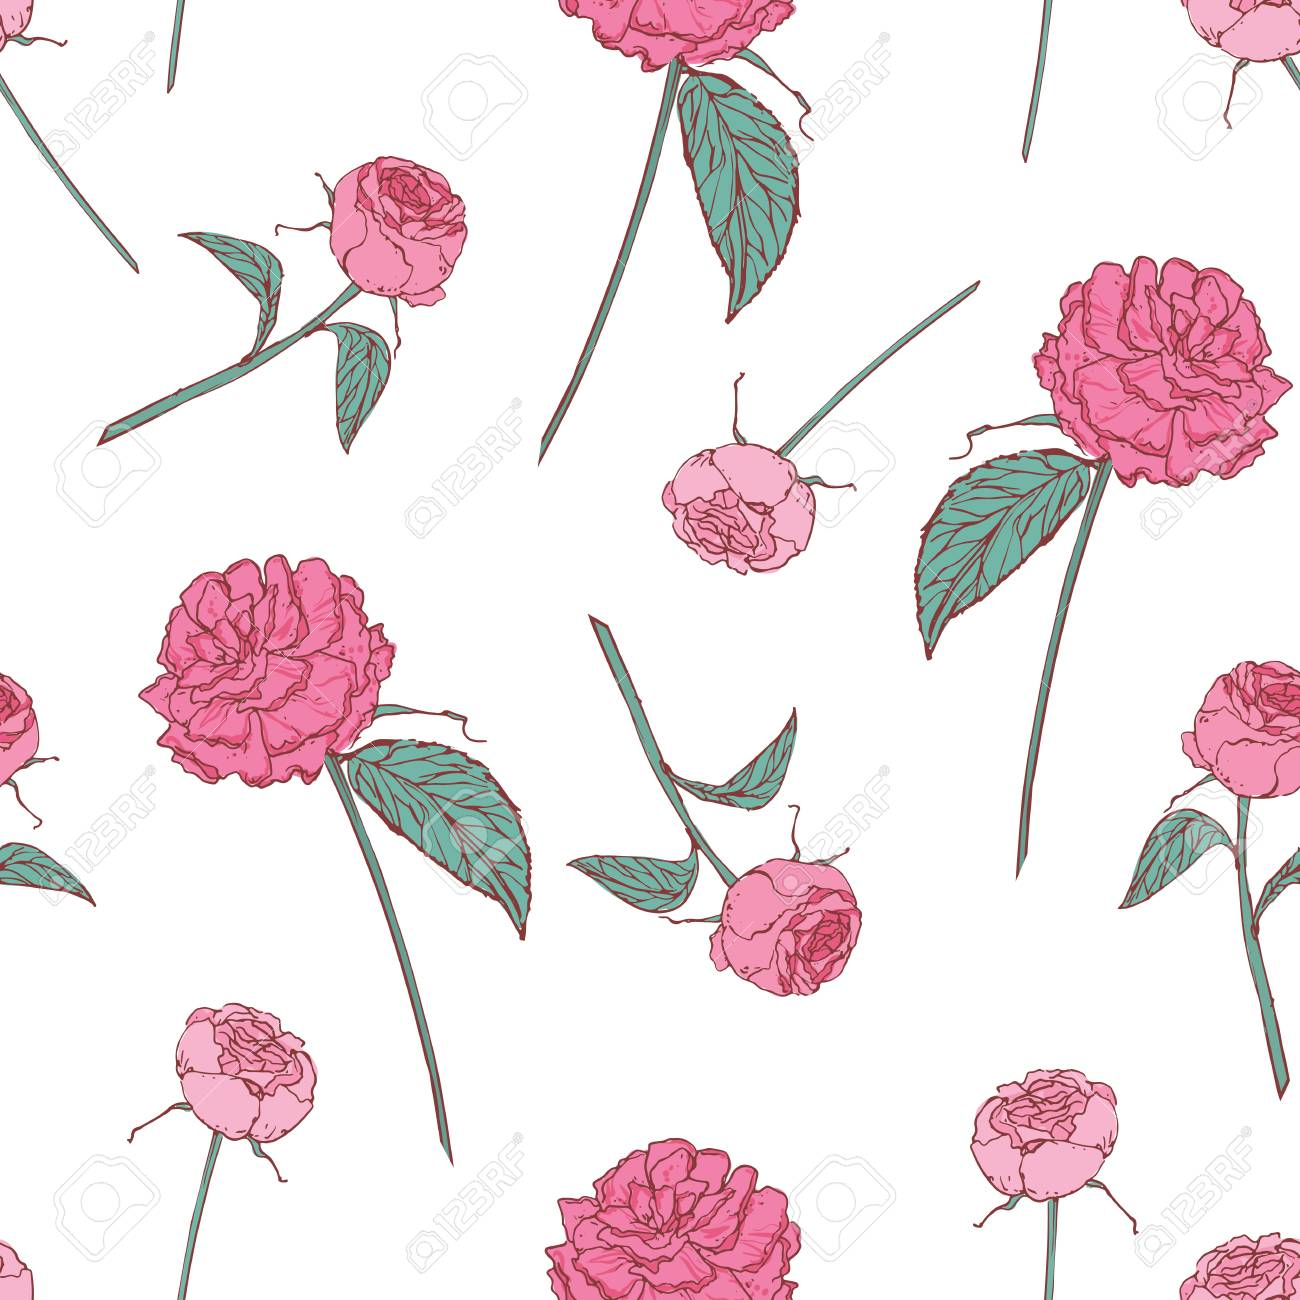 Elegant Floral Seamless Pattern With Beautiful Roses On White